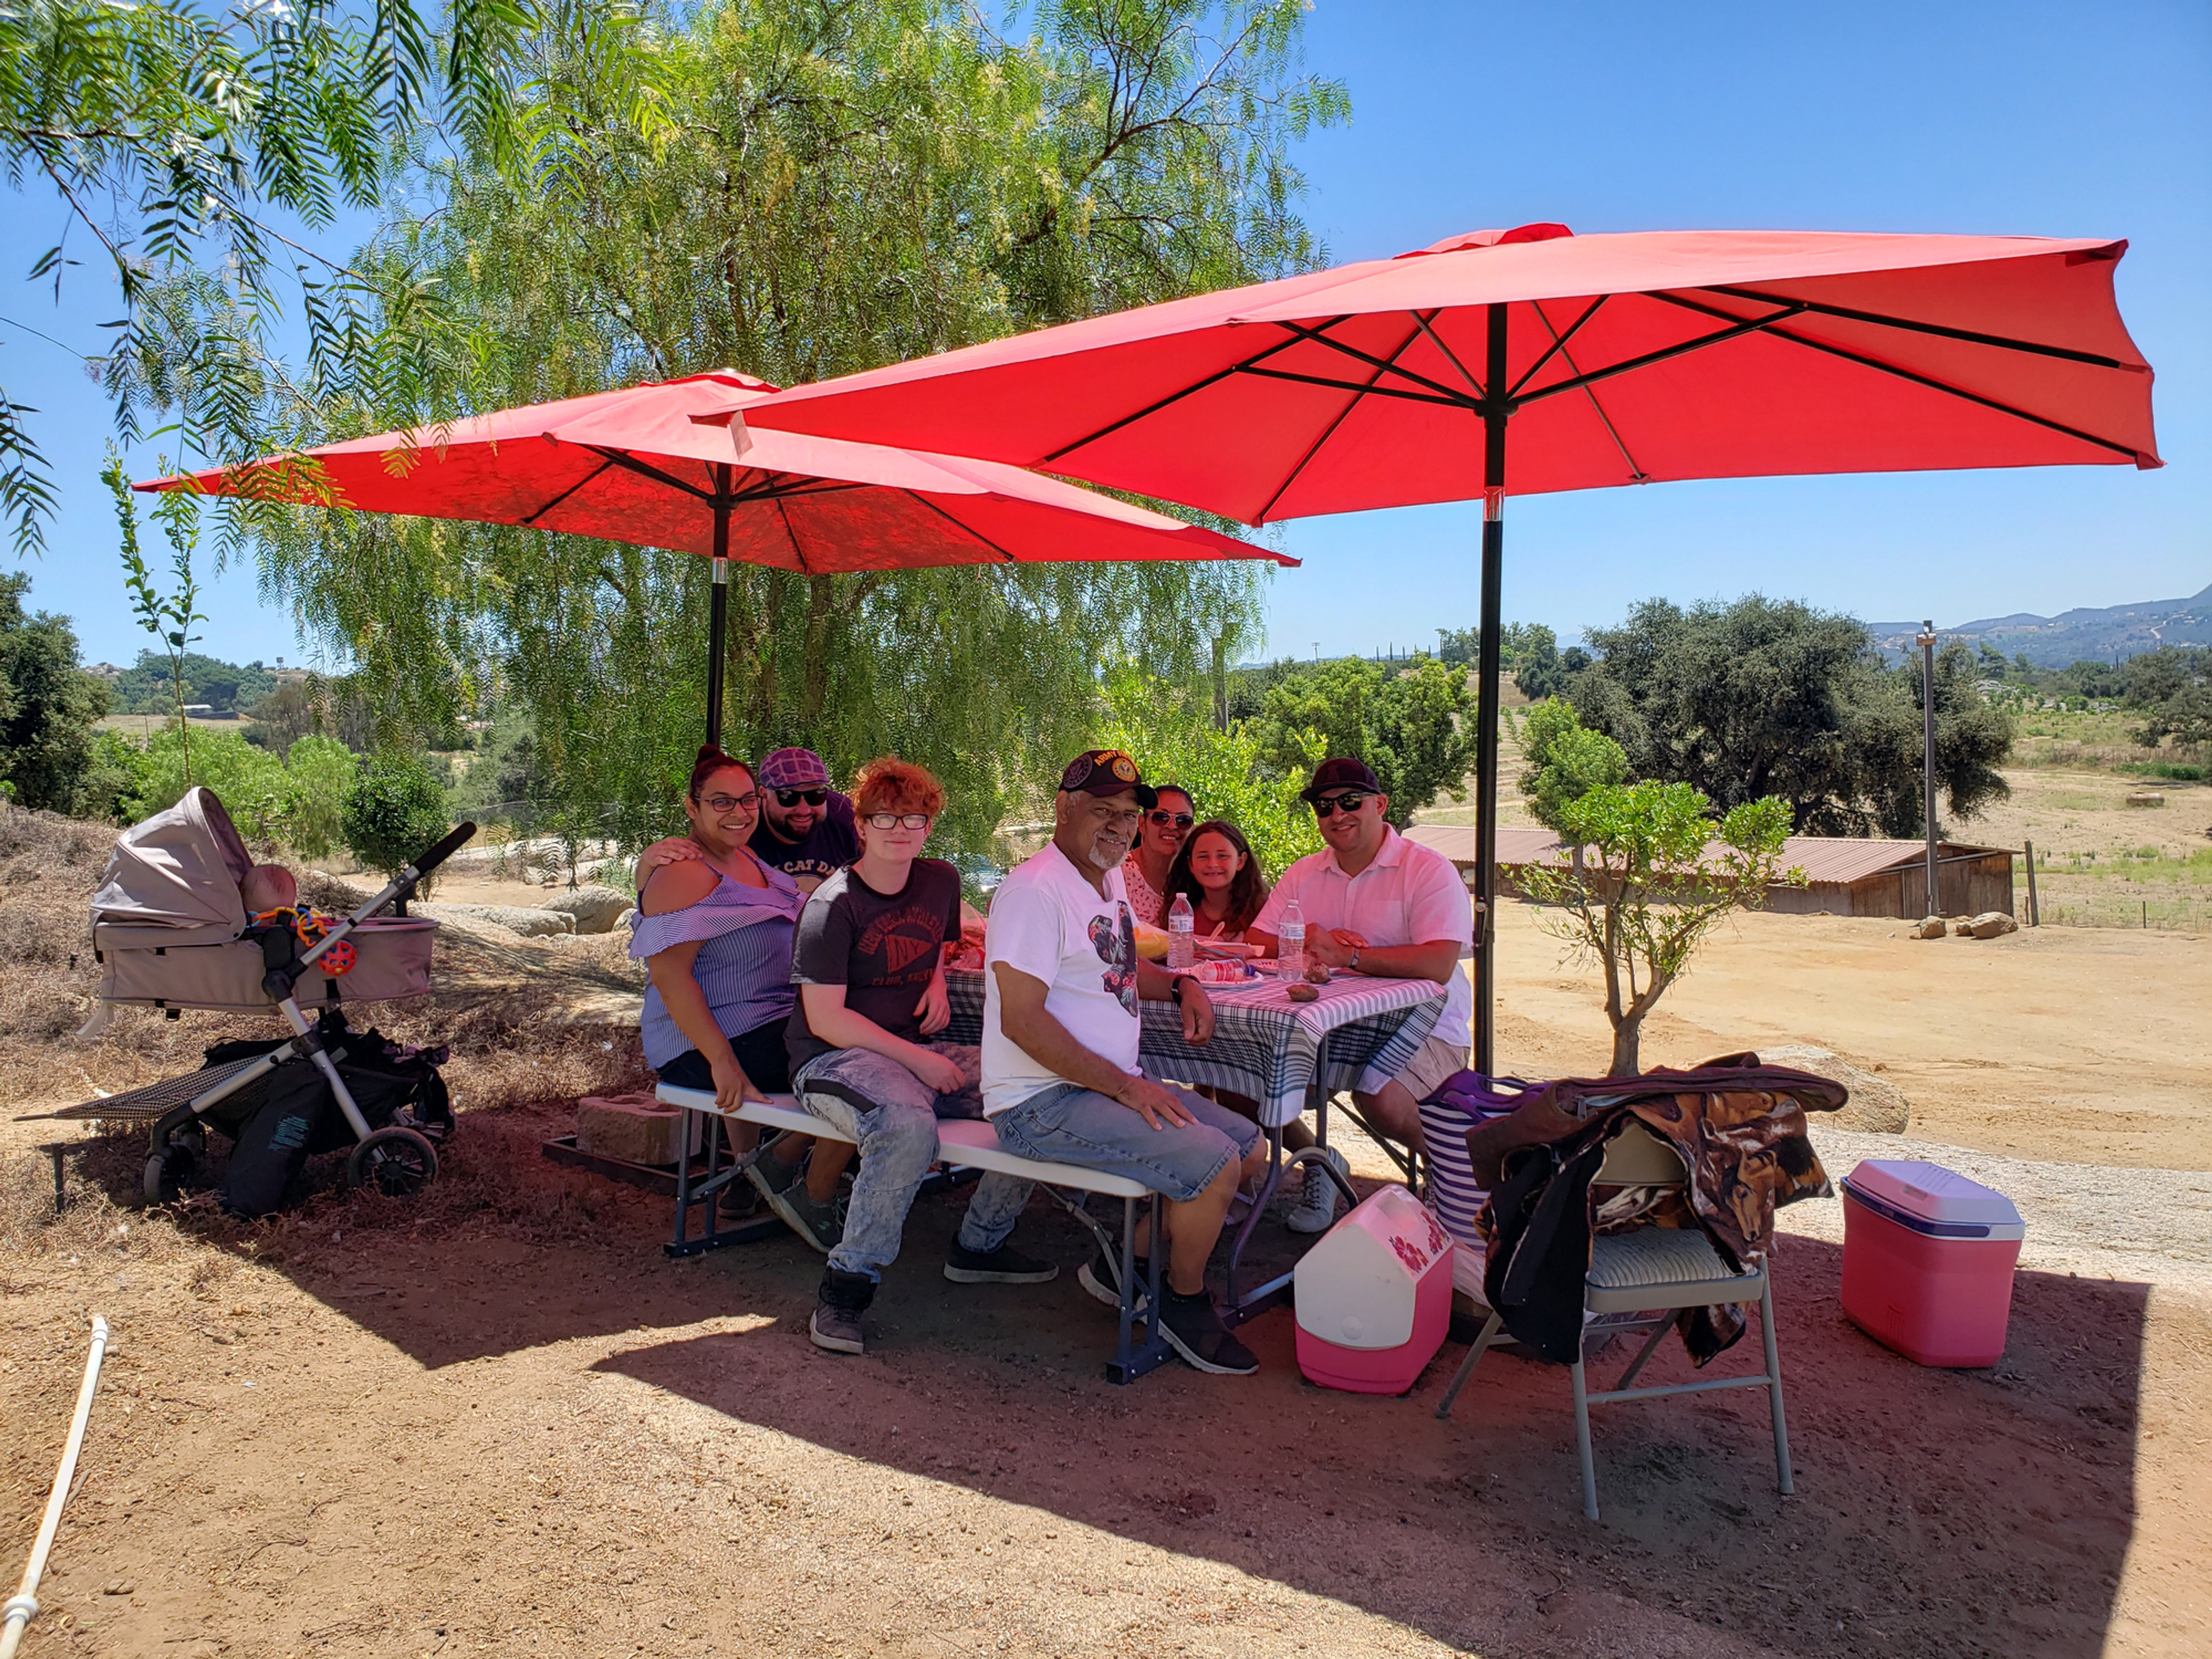 30 Minute Picnic Area after your Tour